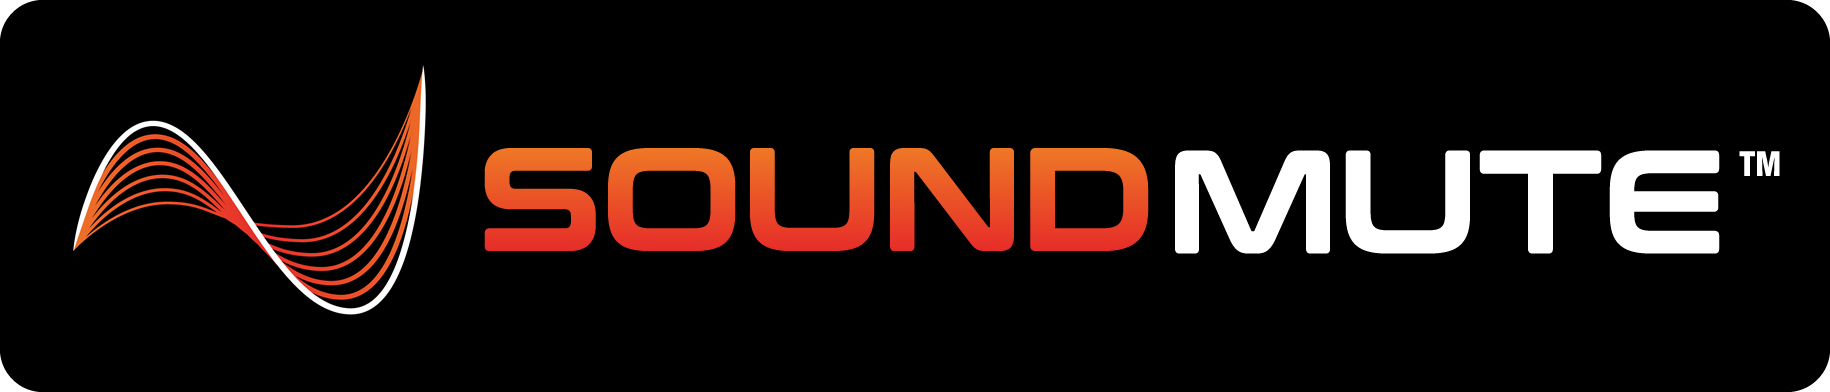 Soundmute Products